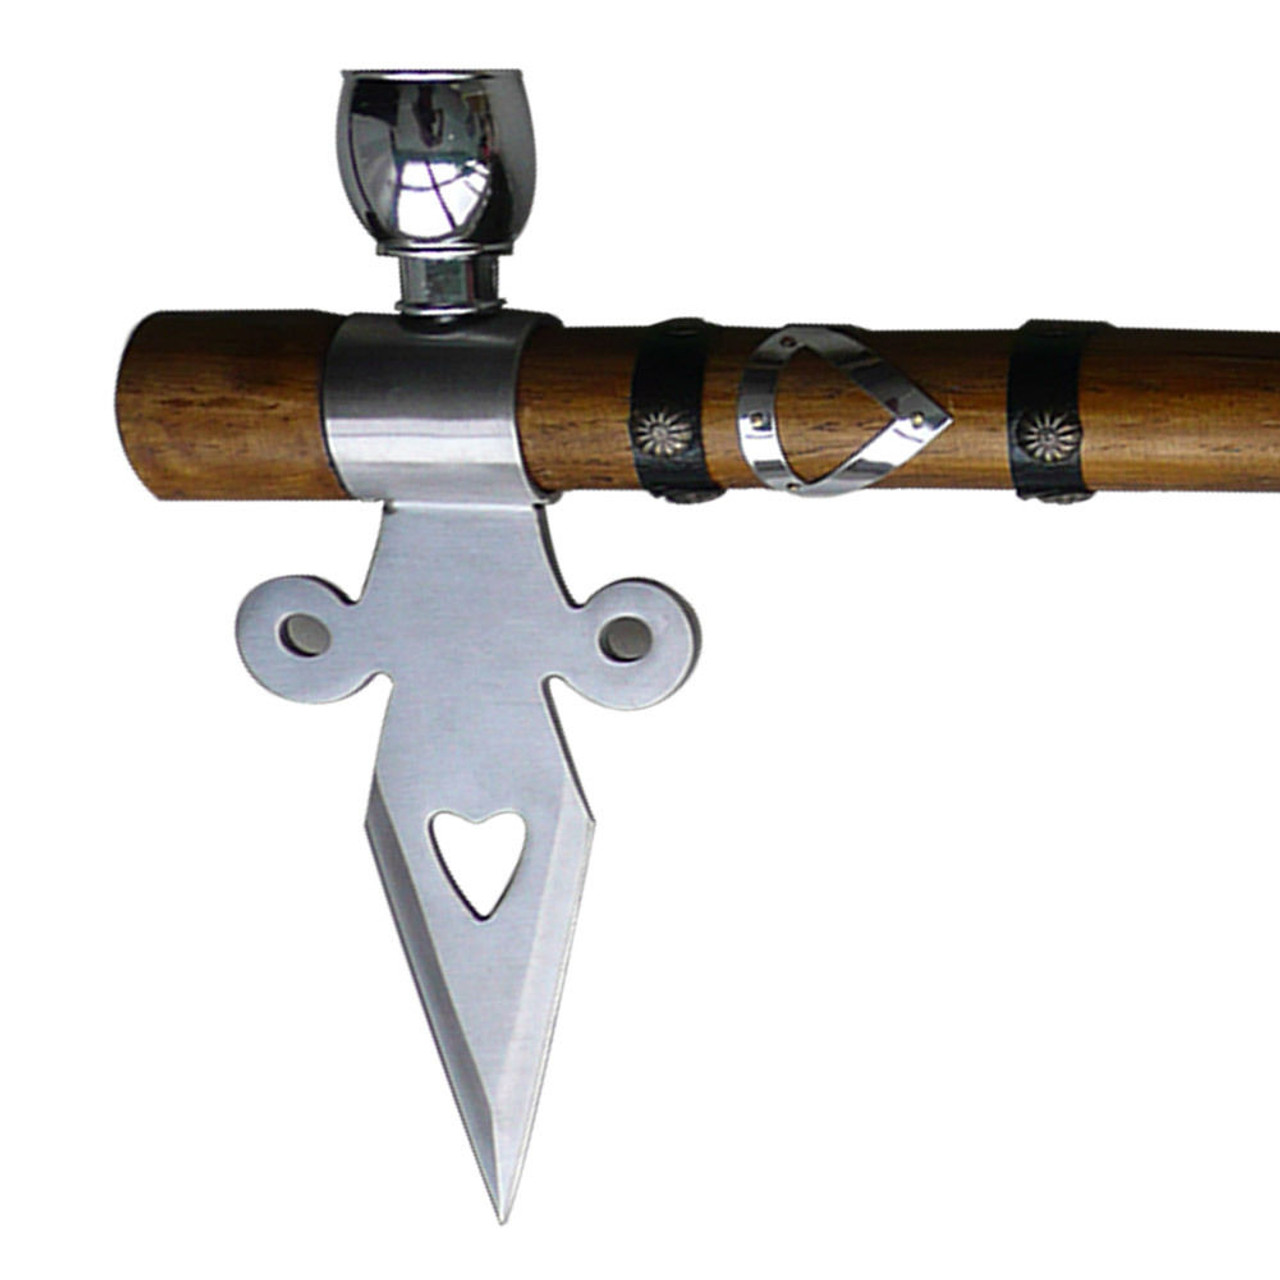 Earth Spirit Ceremonial Tomahawk Peace Pipe Native American Throwing Axe Hatchet